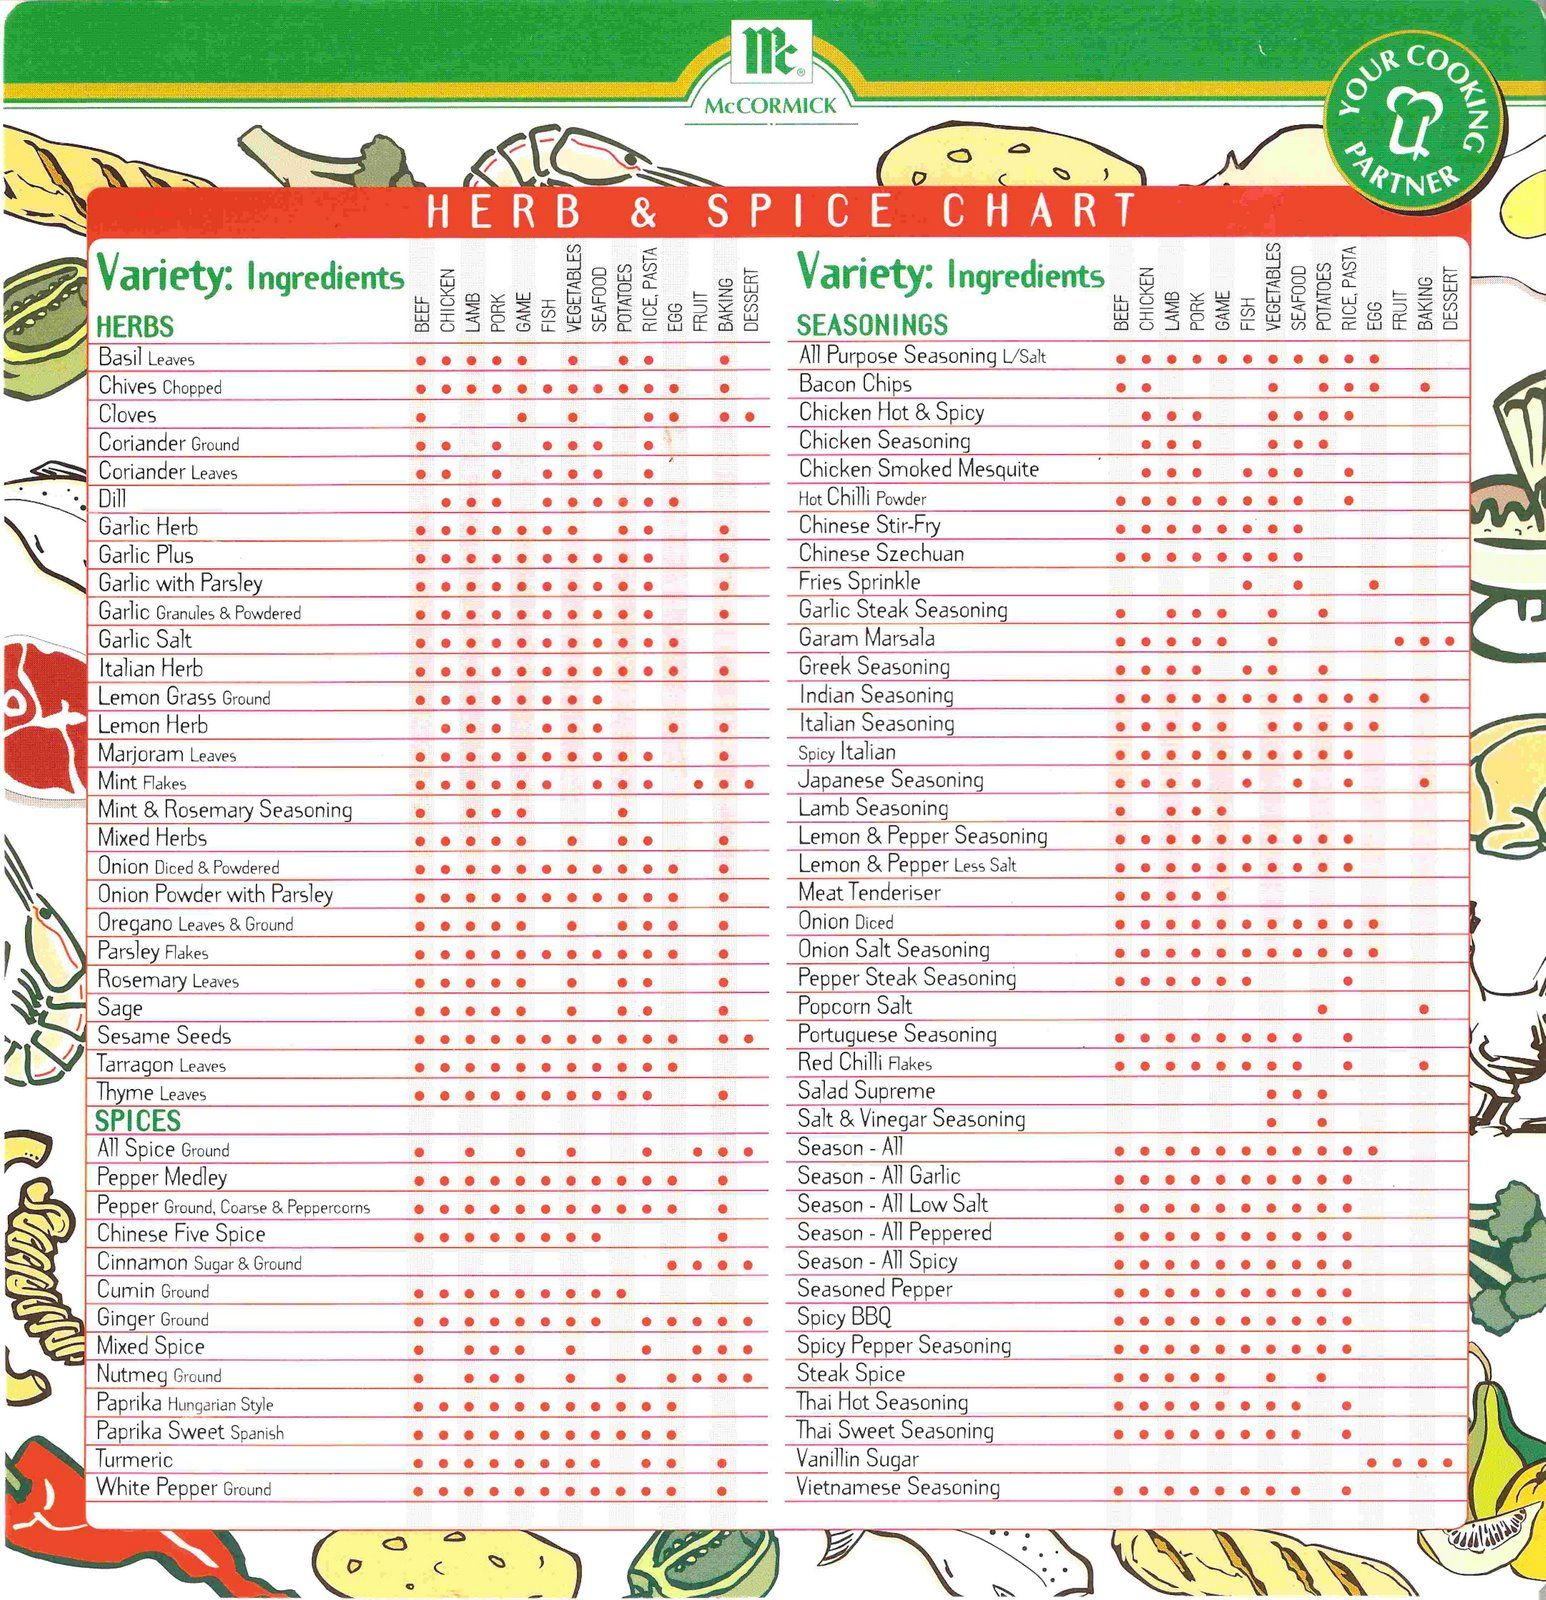 Herb & Spice Chart Spice chart, Spices, herbs, Homemade